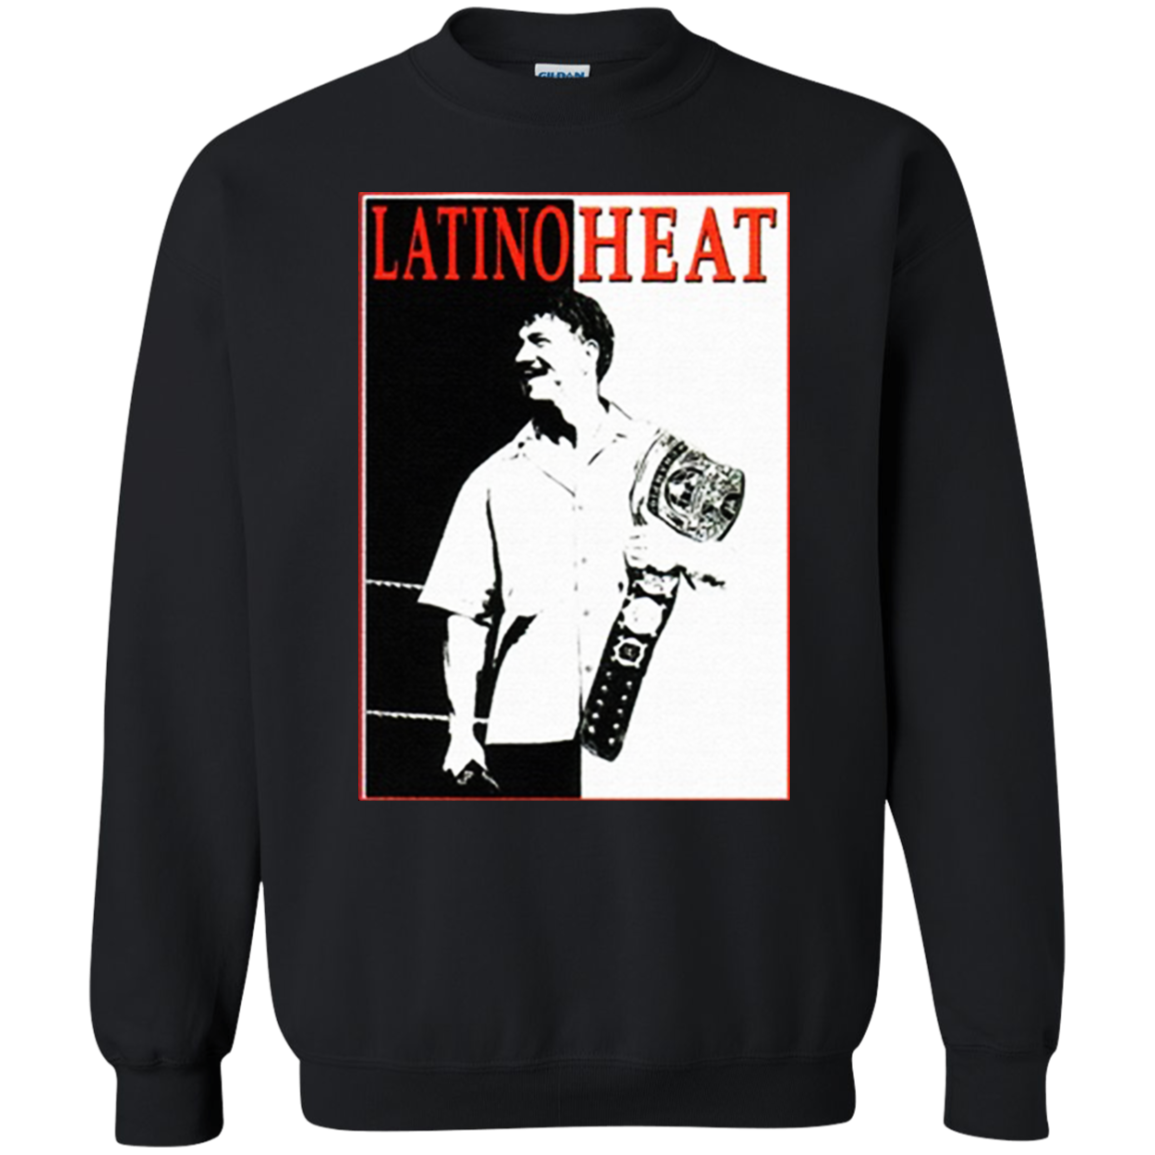 Latino Heat Sweatshirt Sweater 2